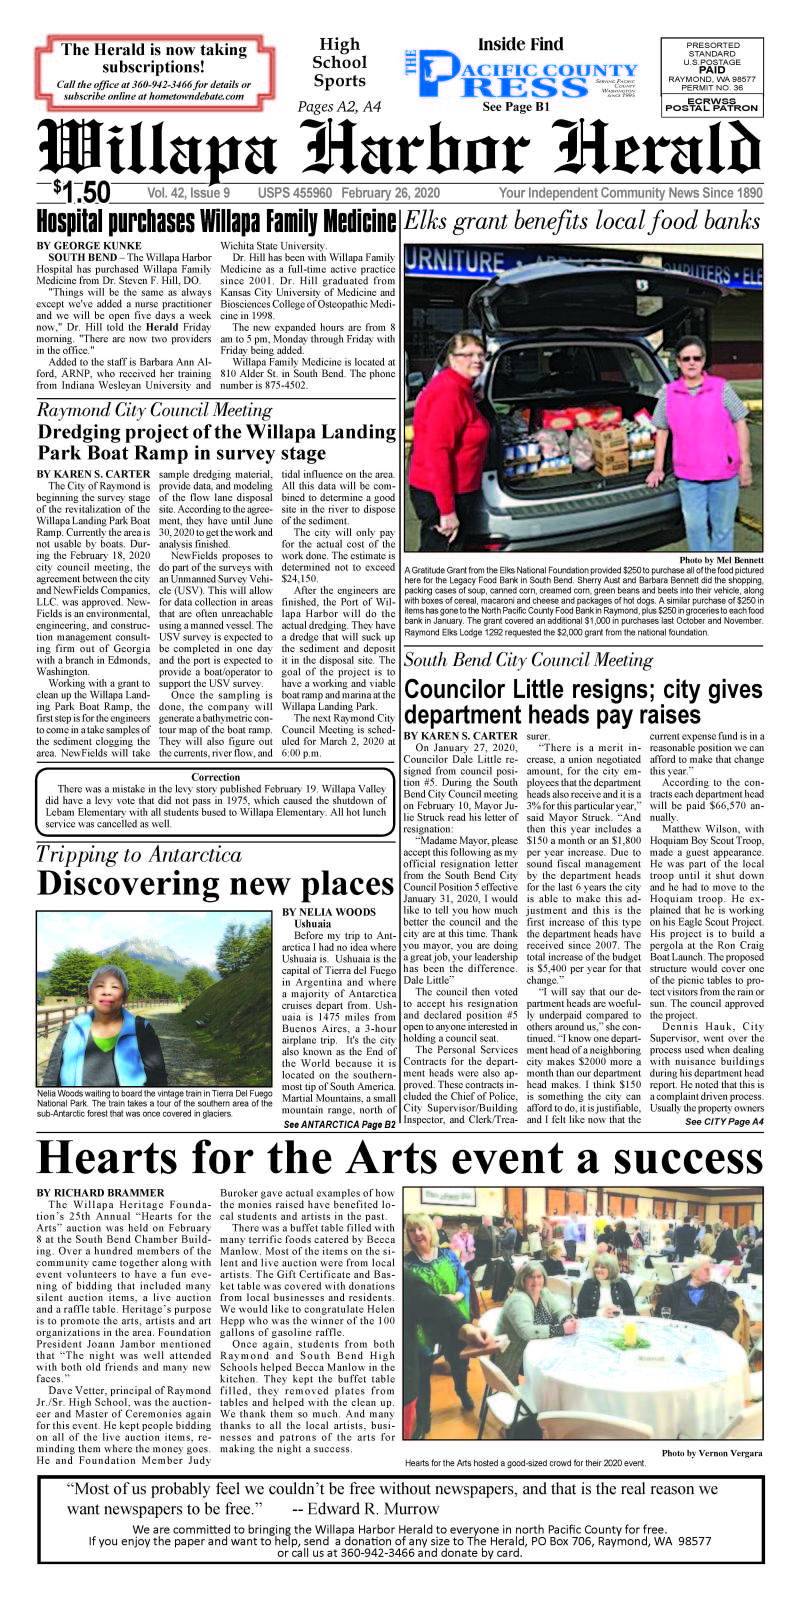 February 26, 2020 Willapa Harbor Herald and Pacific County Press